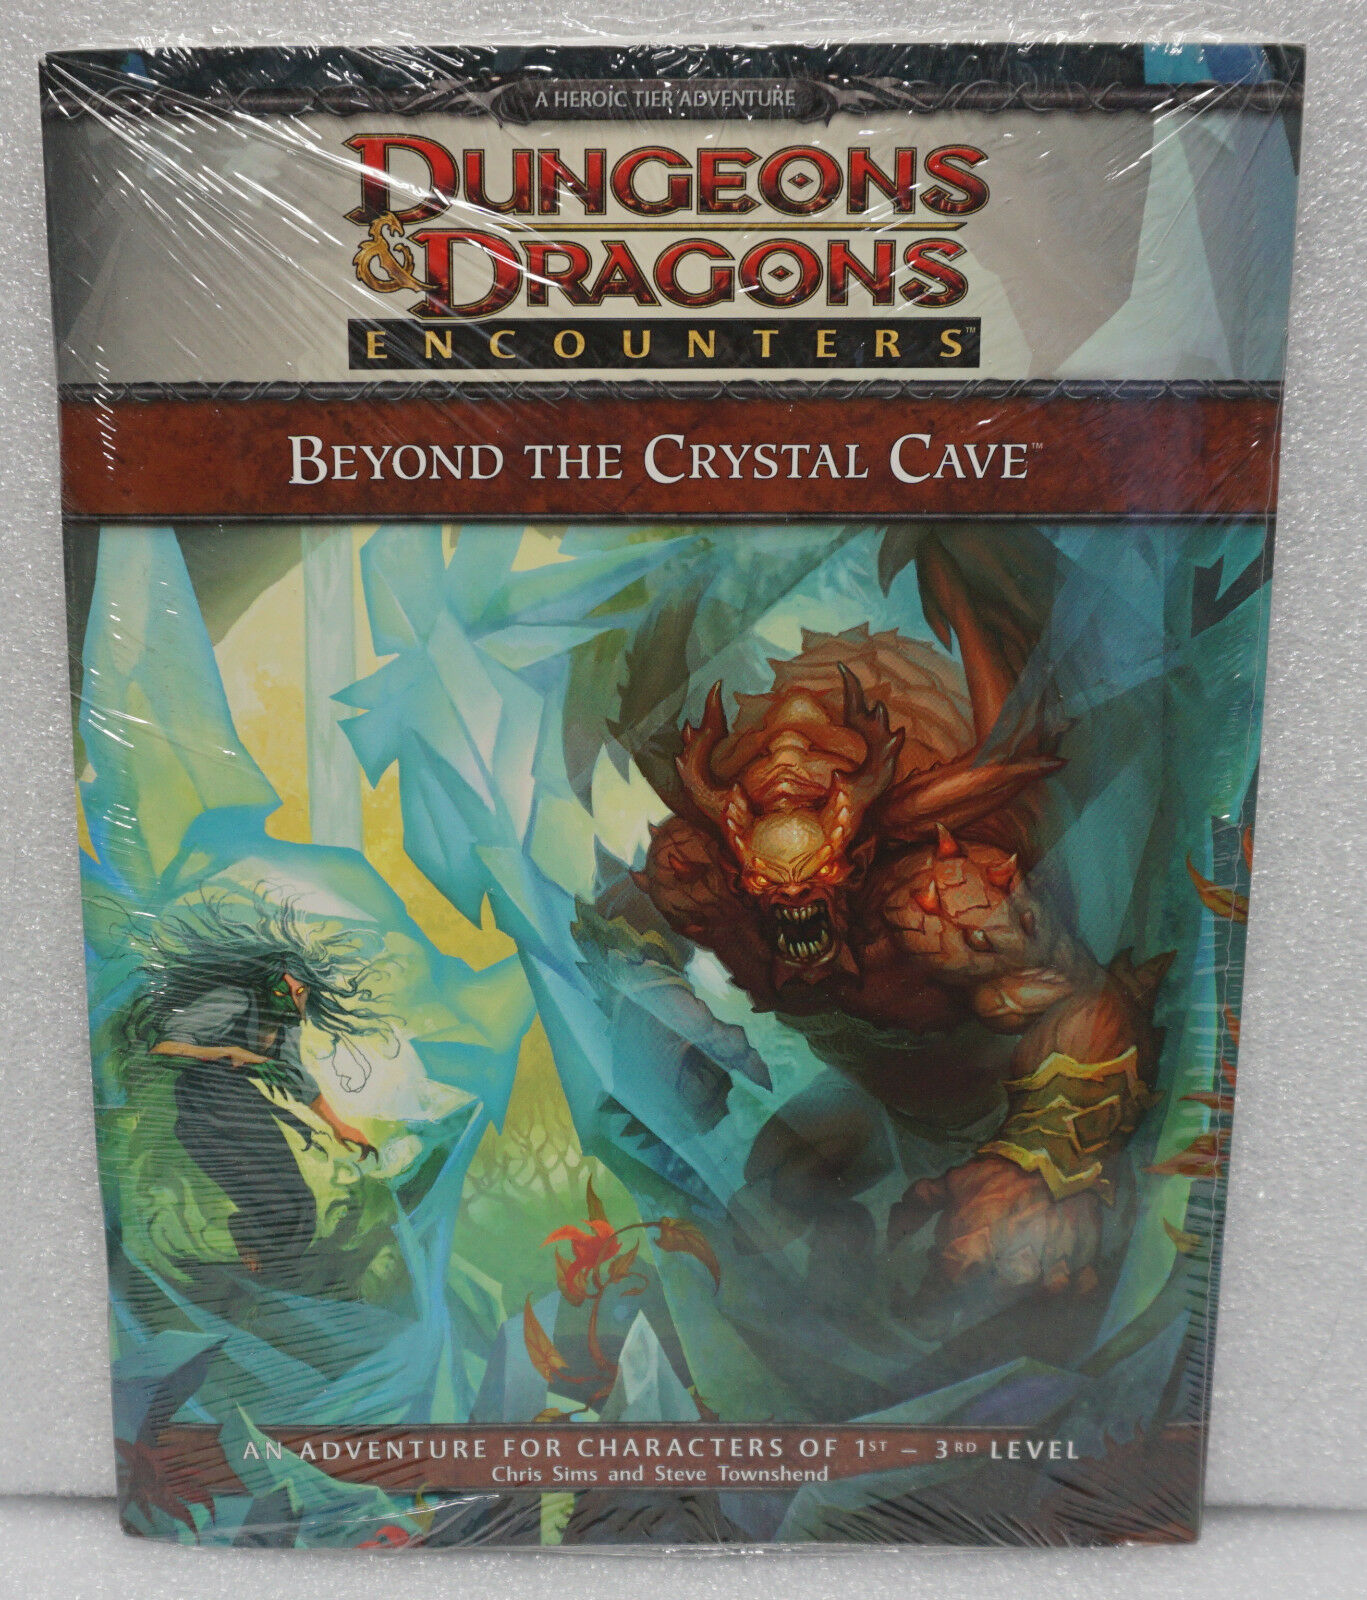 Dungeons & Dragons D&D Encounters Beyond the Crystal Cave